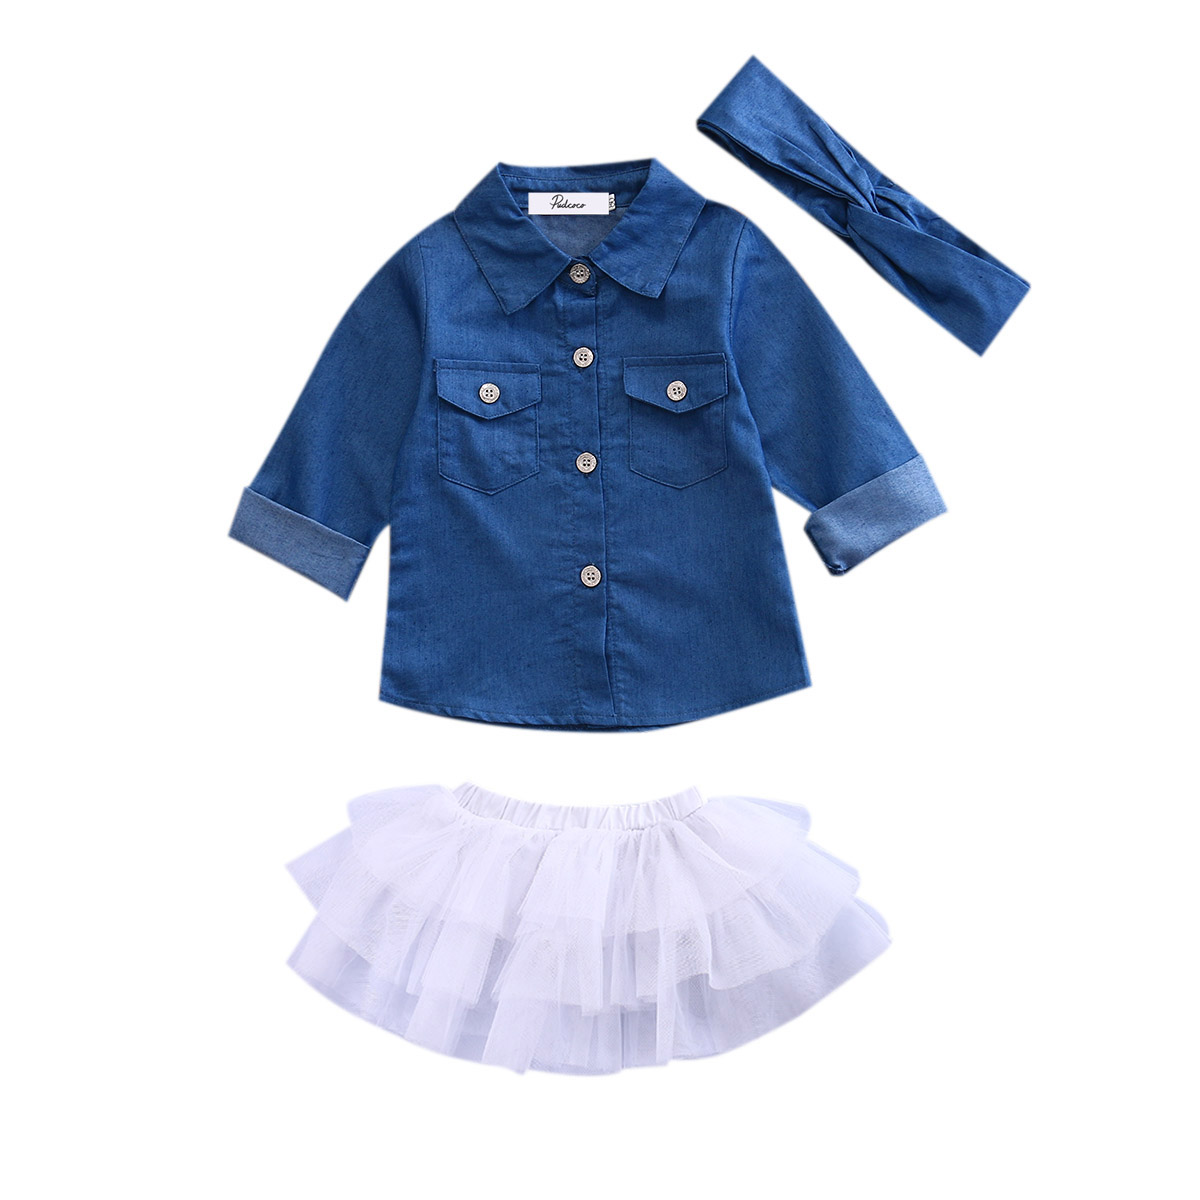 3PCS Toddler Kids Baby Girl Clothes Set Denim Tops T-shirt +Tutu Skirt Headband Outfits Summer Cowboy Suit Children Set 0-5Y 3pcs set cute newborn baby girl clothes 2017 worth the wait baby bodysuit romper ruffles tutu skirted shorts headband outfits